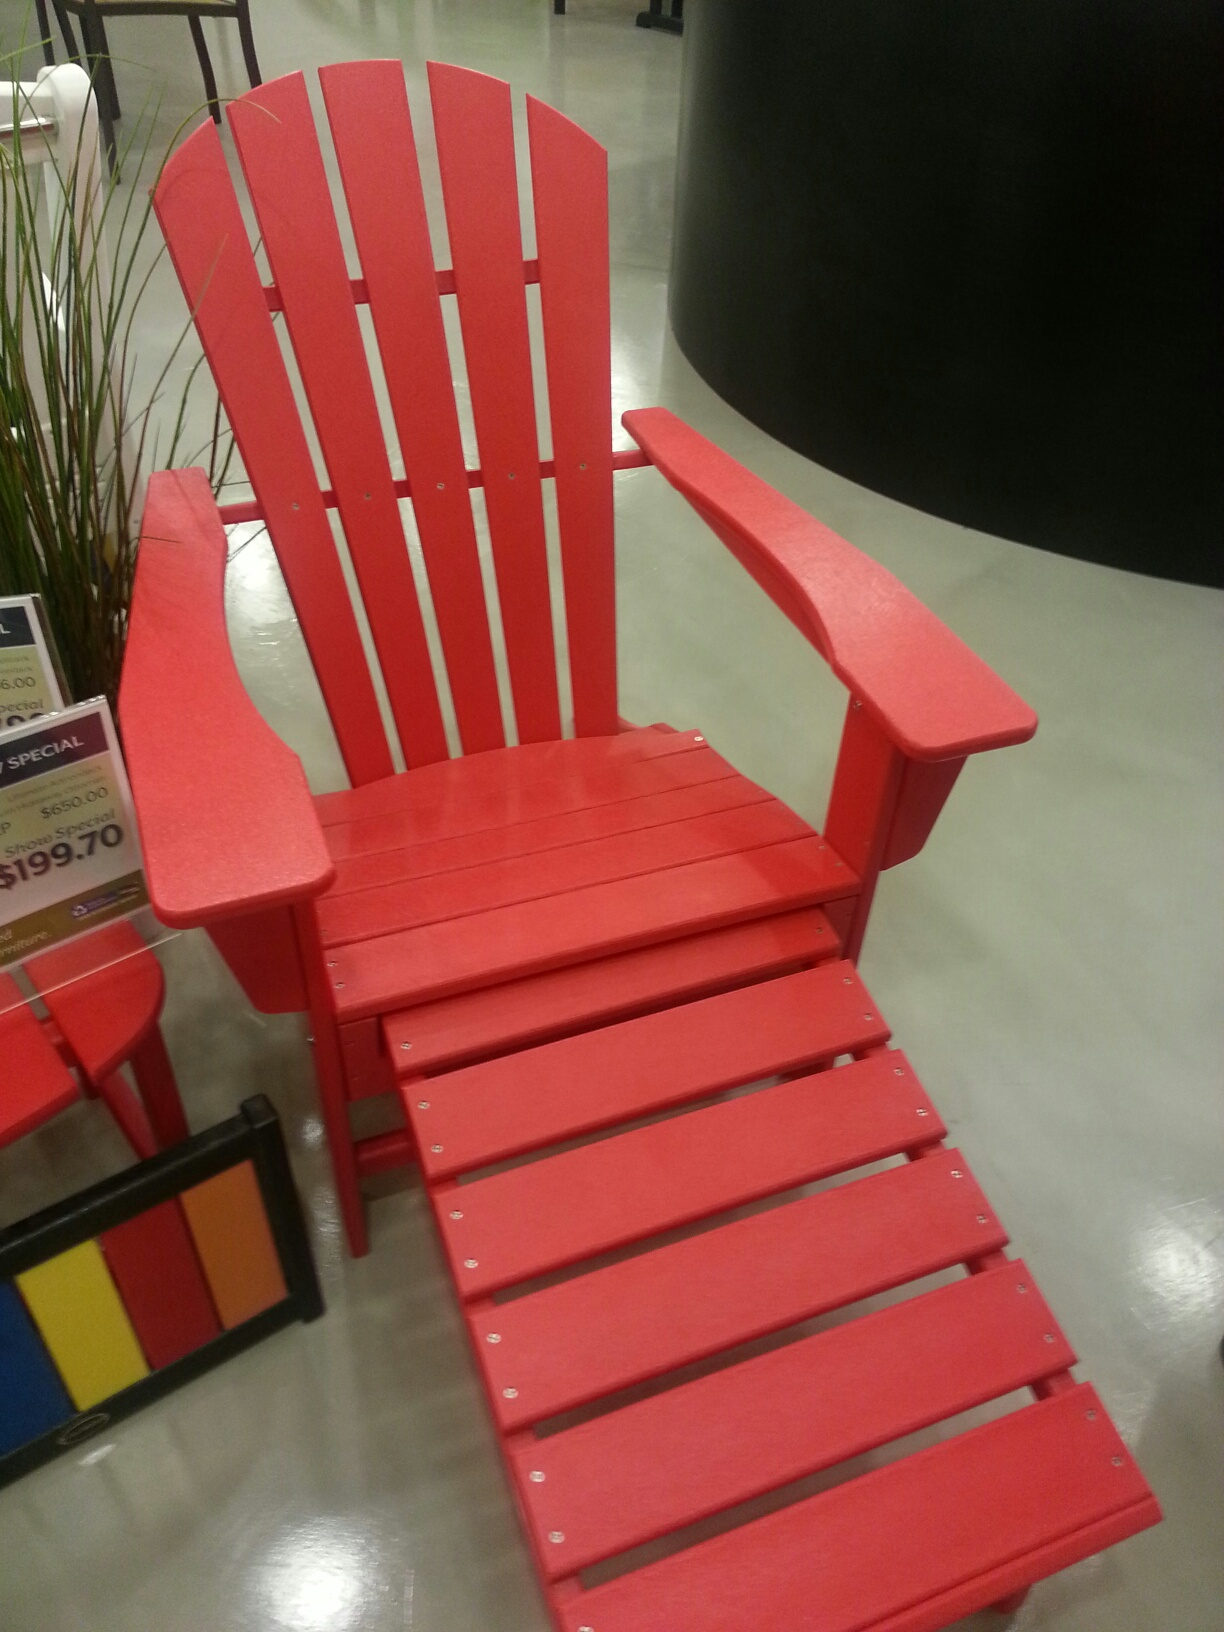 poly wood adirondack chairs frontgate outdoor lounge chair cushions sale on polywood with ottoman bay breeze patio so for a limited time only we re featuring the south beach and hideaway 399